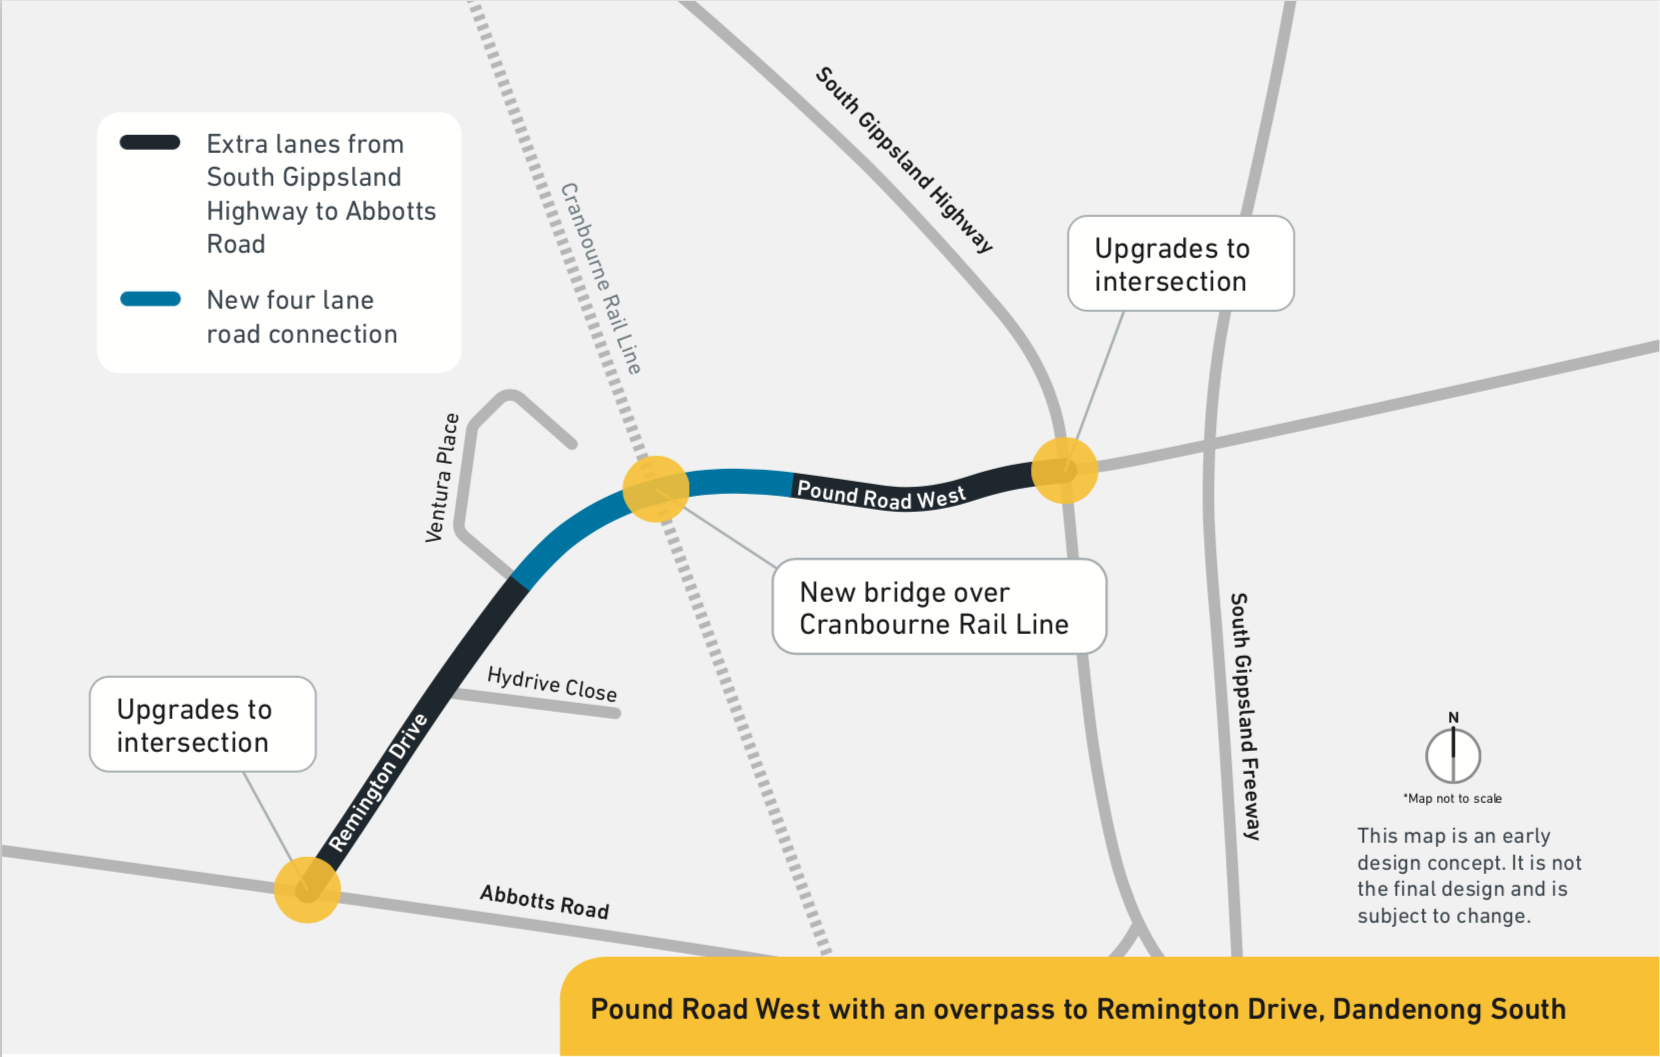 As part of the upgrade, we plan to: build a new bridge over the Cranbourne train line to connect Pound Road West and Remington Drive add an extra lane each direction between Abbotts Road and South Gippsland Highway upgrade the existing intersections at Abbotts Road and South Gippsland Highway add safety barriers along the road.